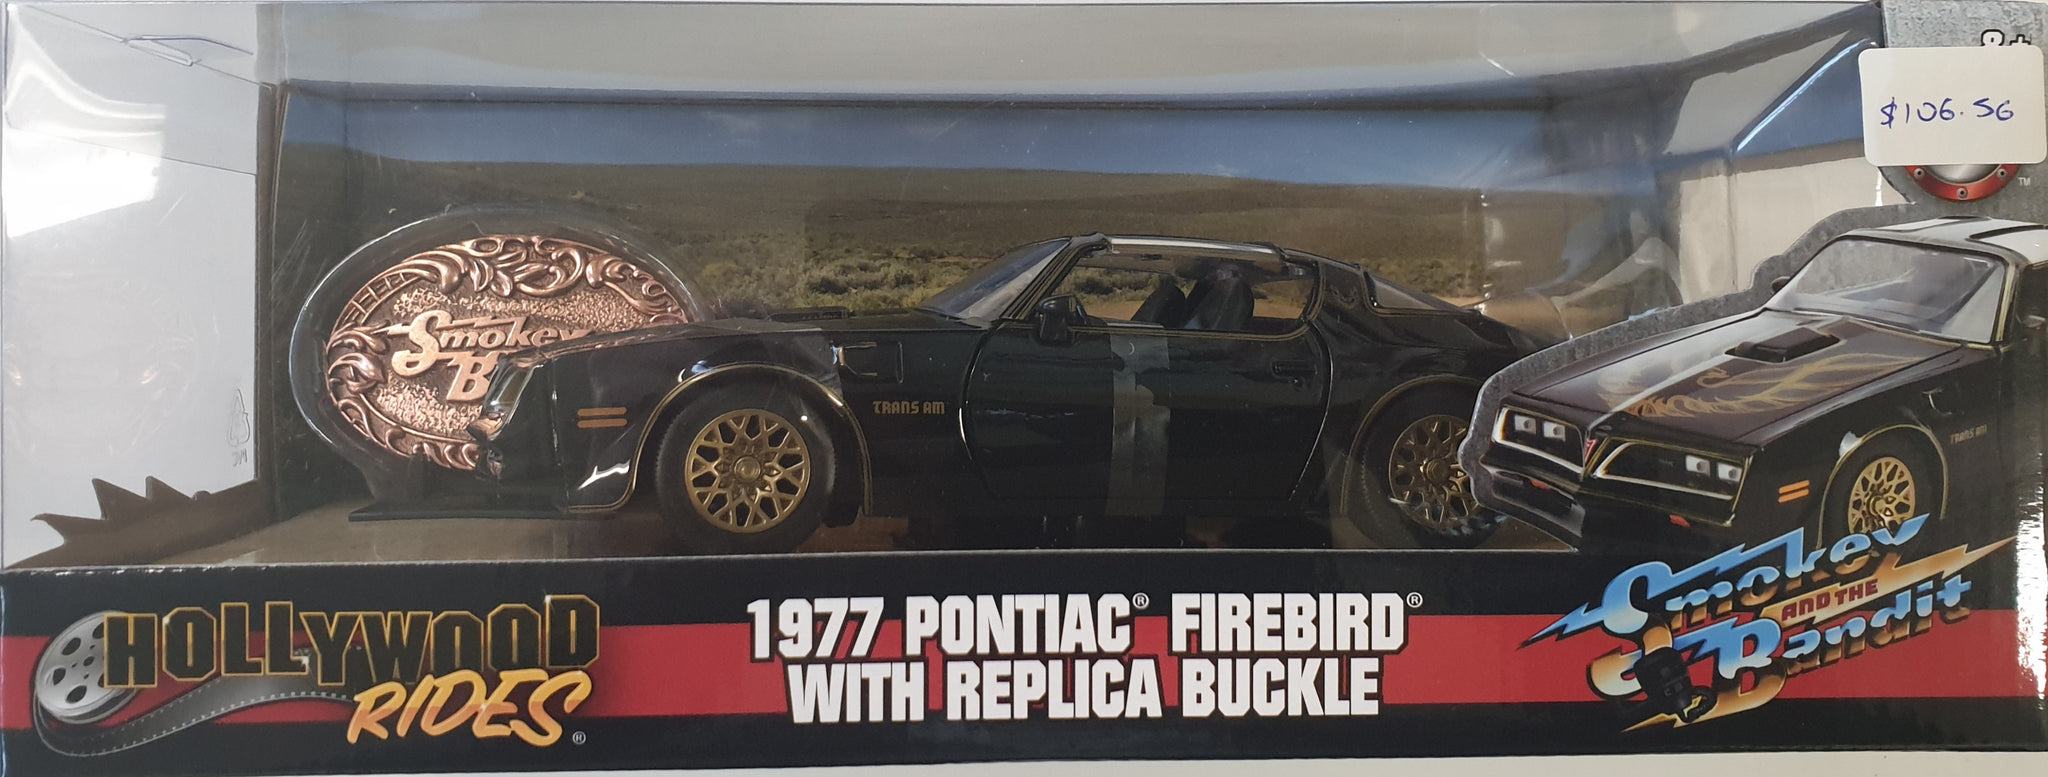 1977 Pontiac Firebird from Smokey and the Bandit